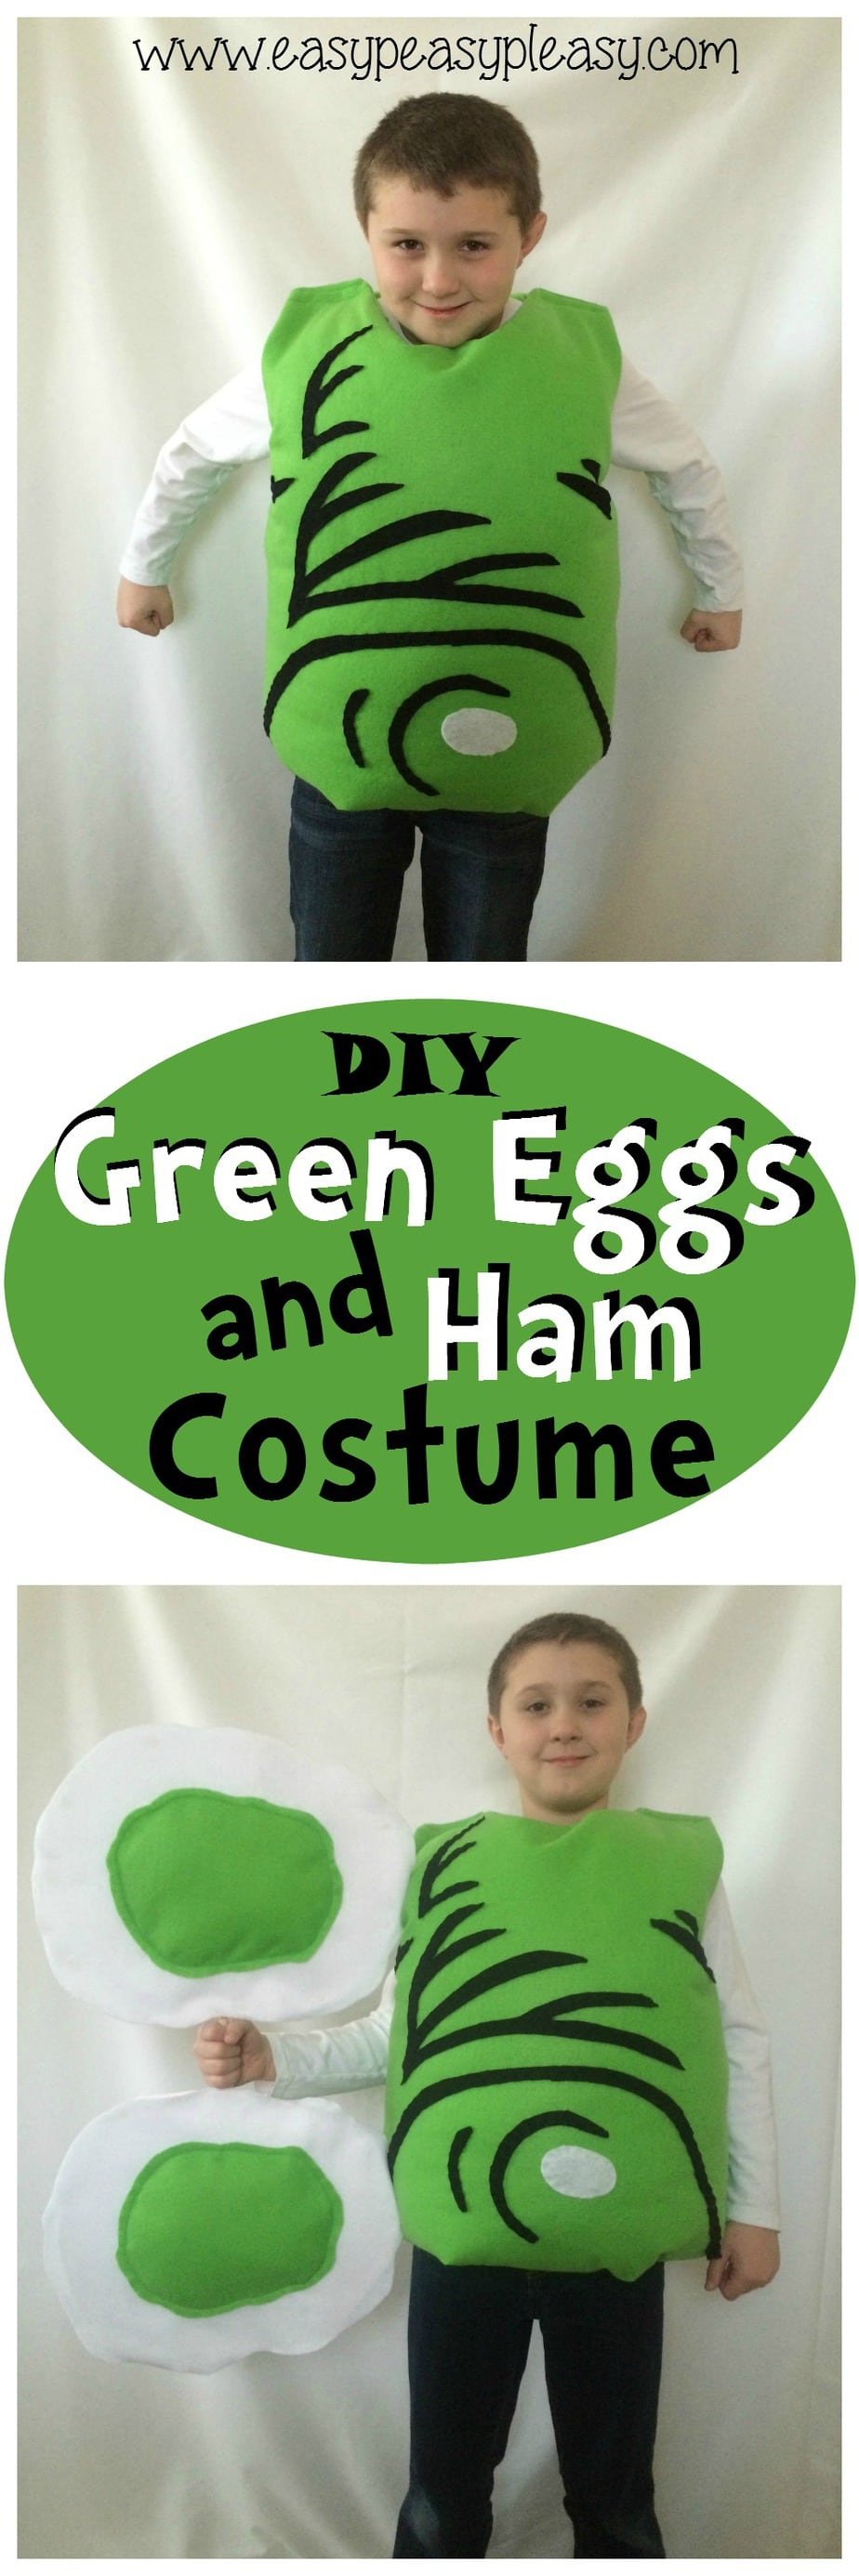 DIY Green Eggs and Ham Costume is perfect for Dr. Seuss week at school or as a Halloween Costume!